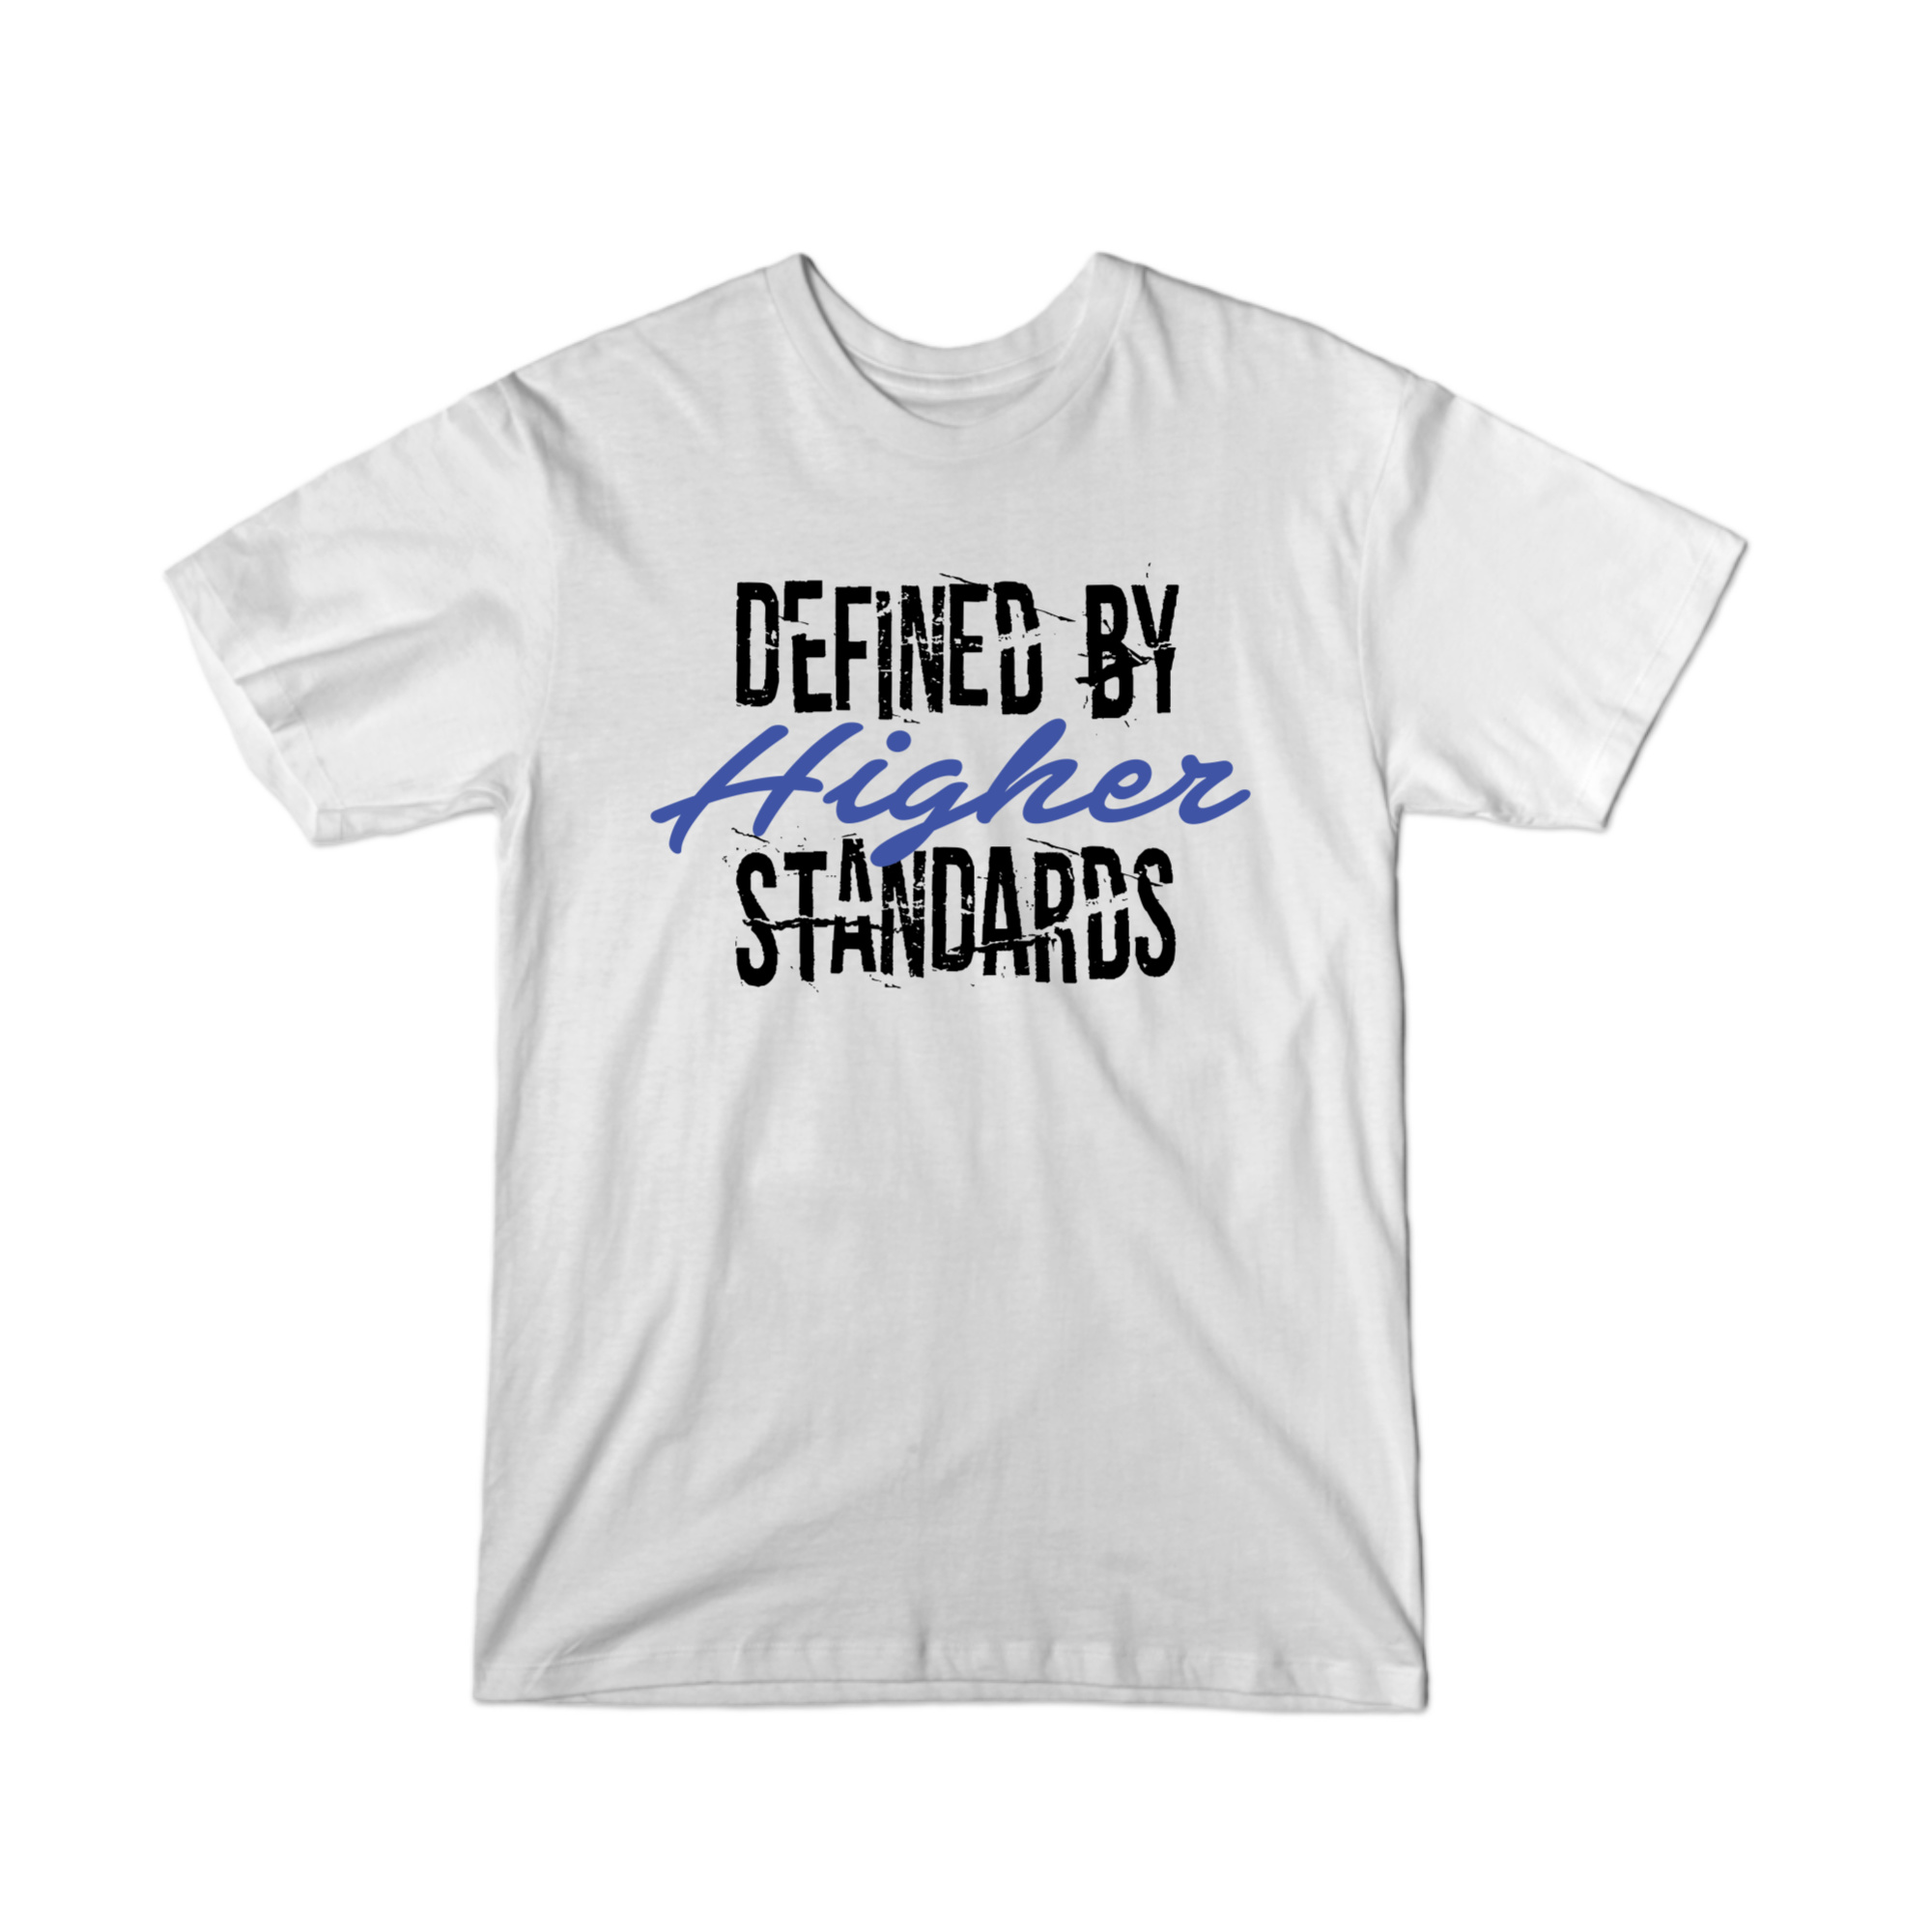 Higher Standards Tee